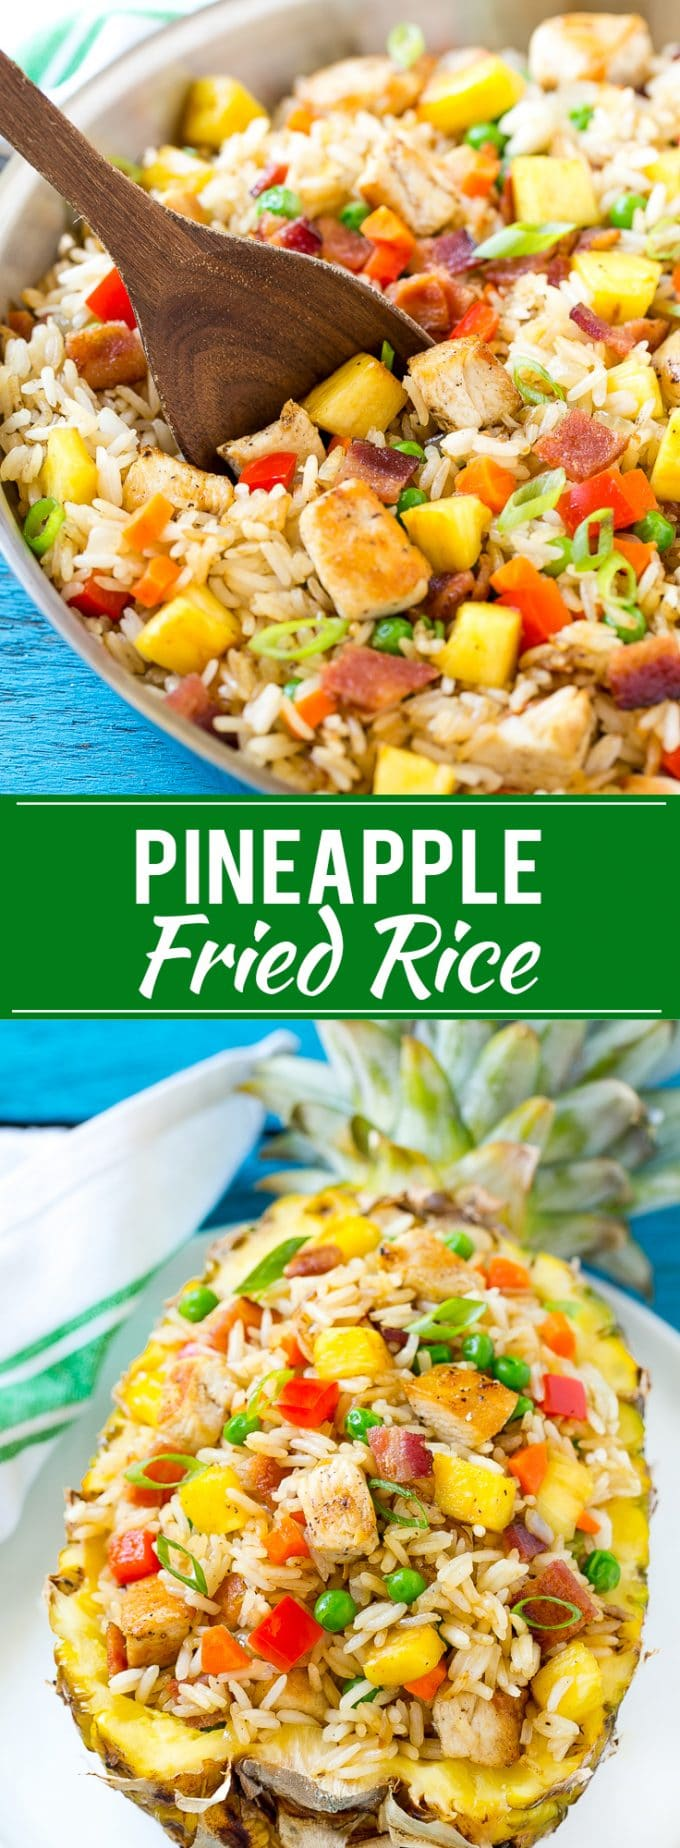 Pineapple fried rice dinner at the zoo pineapple fried rice recipe easy fried rice pineapple recipe side dish ccuart Image collections